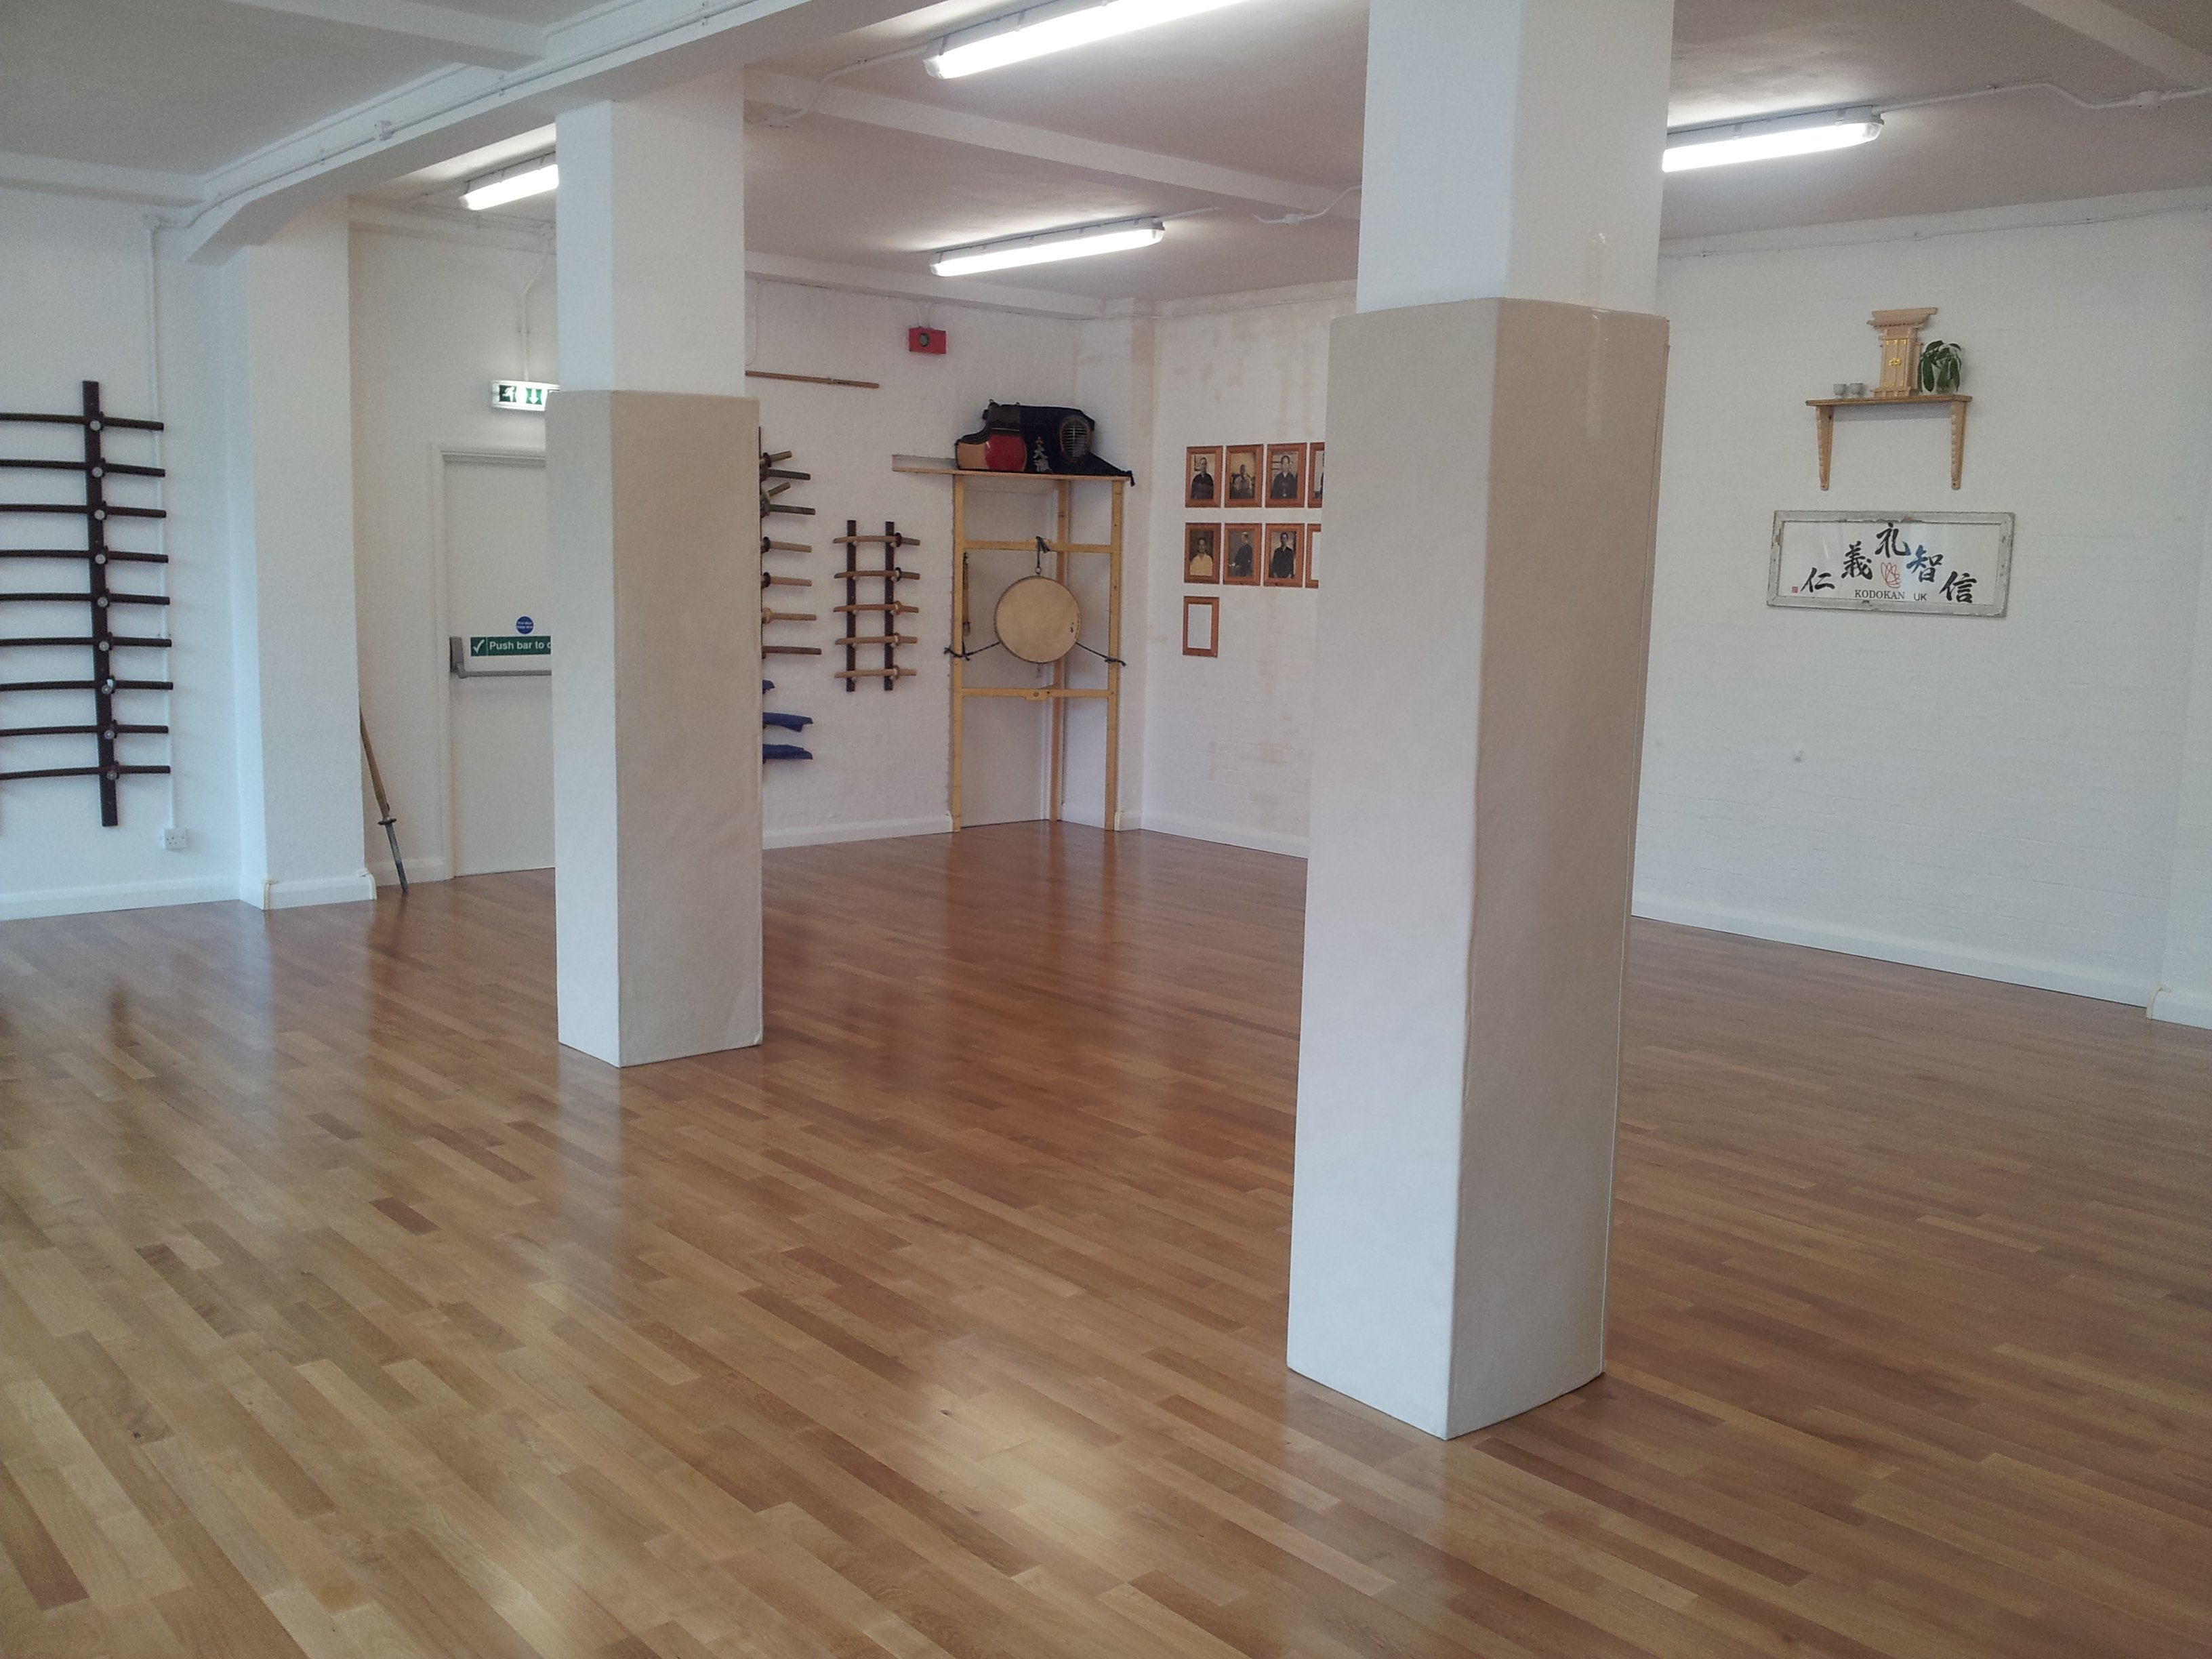 Protection de poteau carre/rectangle petite section (15x15cm max). Hauteur: 200cm. Mousse PU 10cm (REF Prot-R200PU.5)